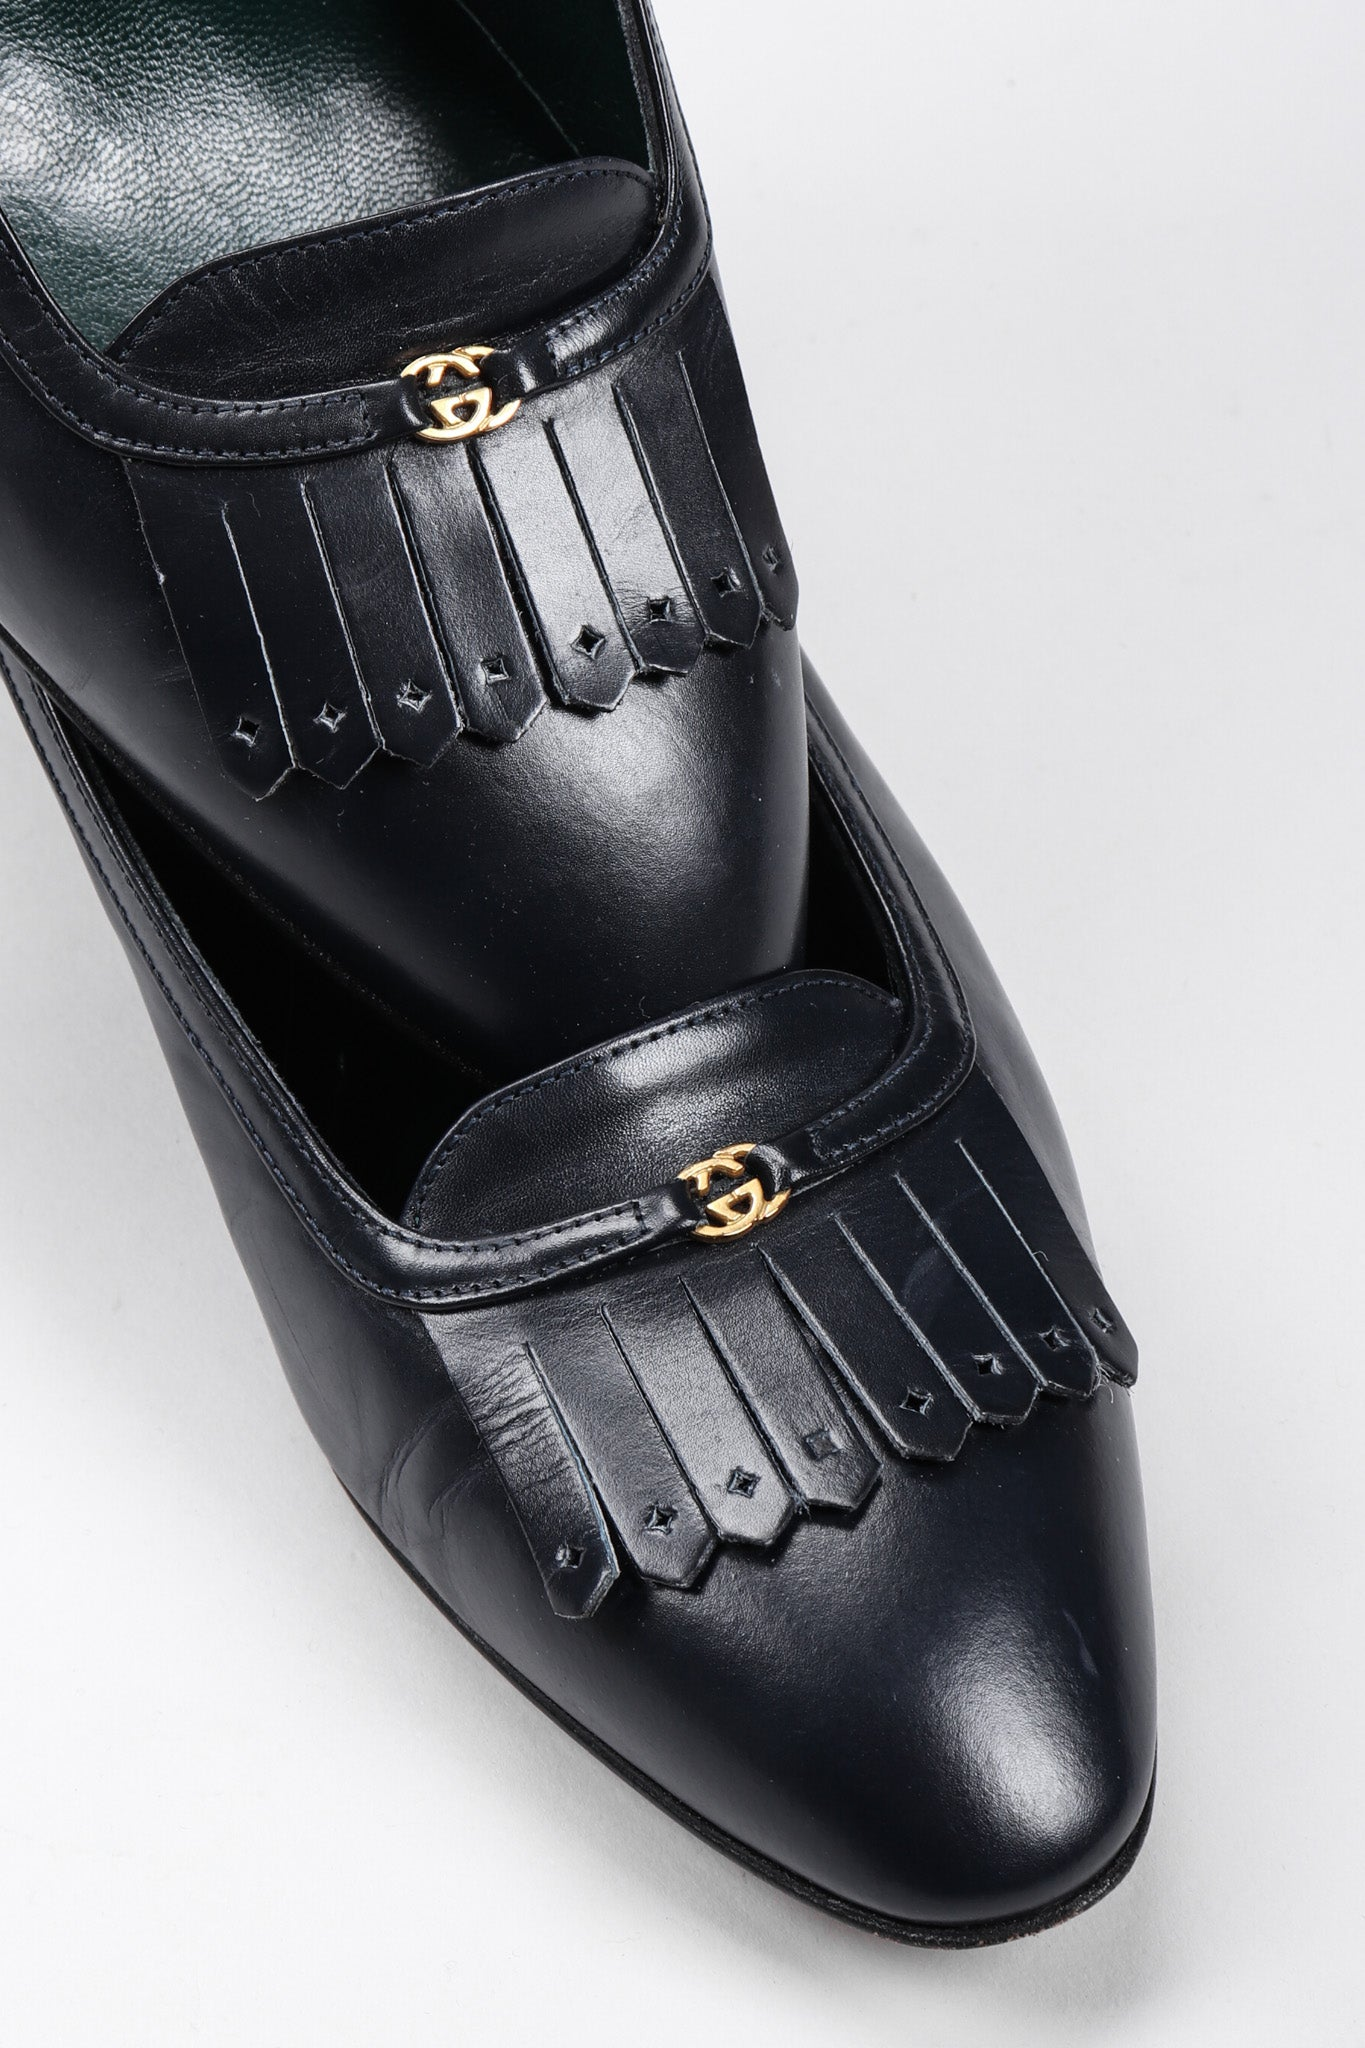 ed0e7b3c3bf Recess Los Angeles Vintage Gucci Leather Fringe Flap Everyday Stacked Loafer  Heels